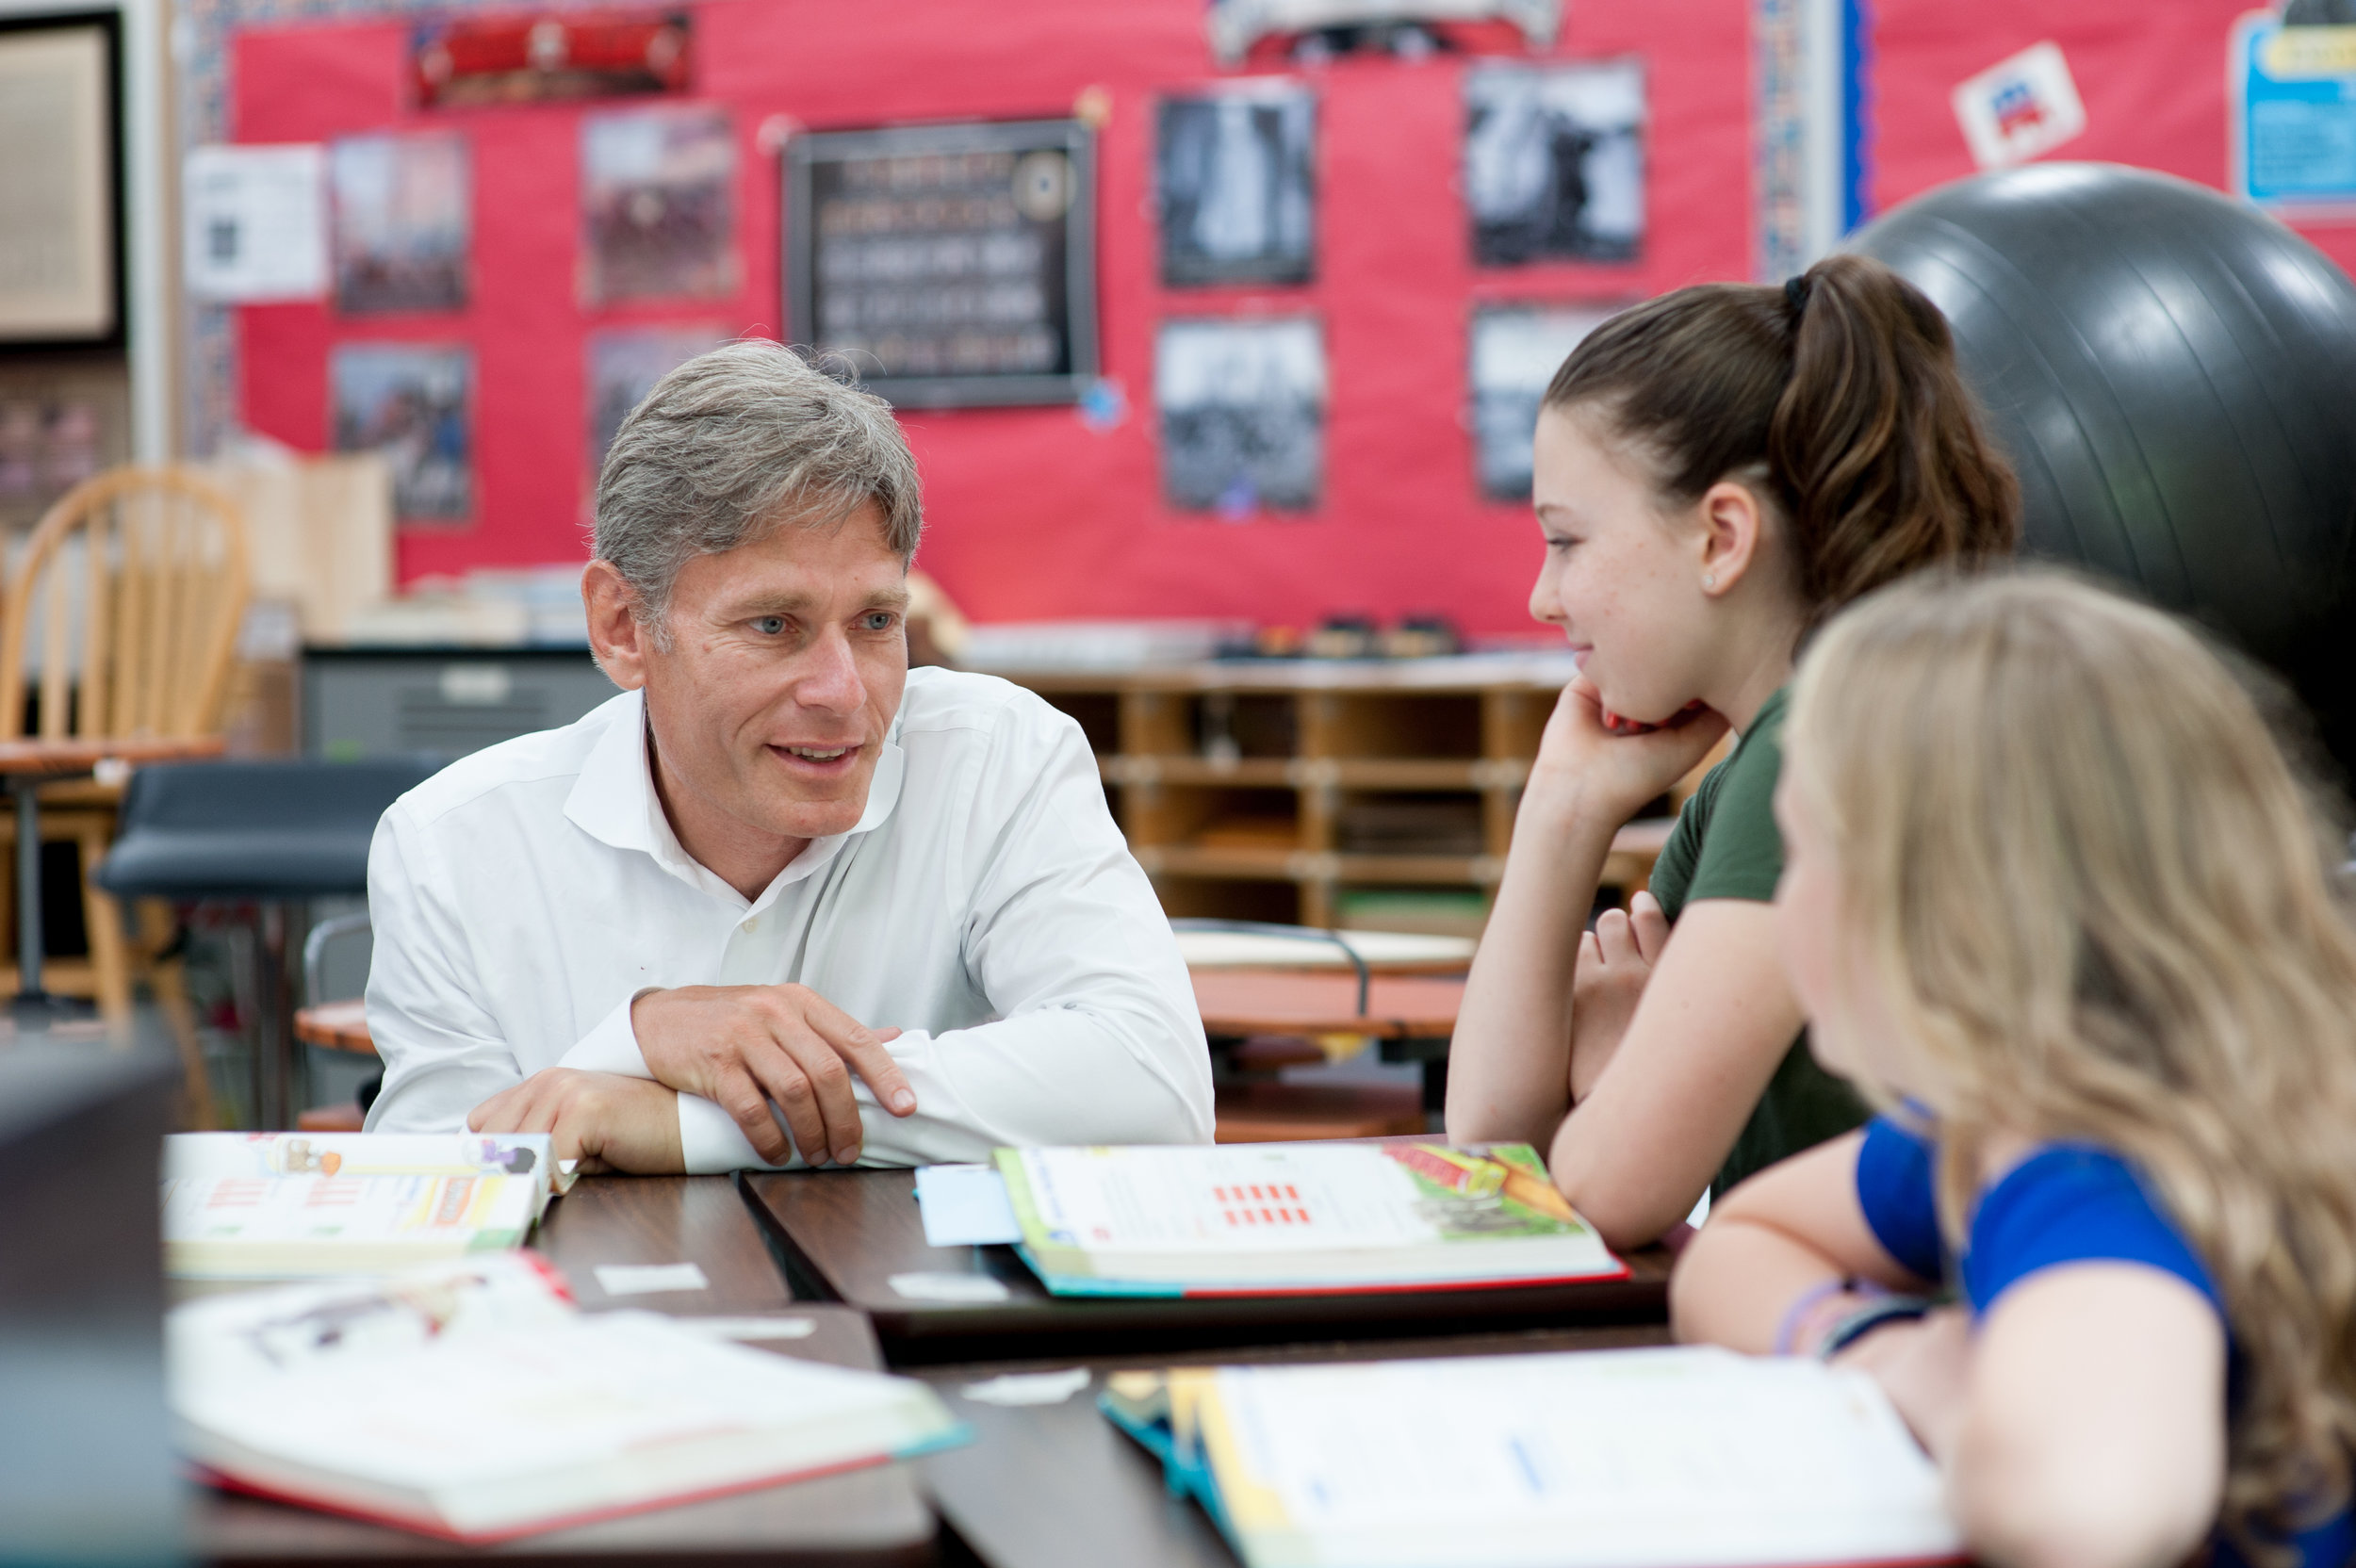 Tom Malinowski with Young School Students